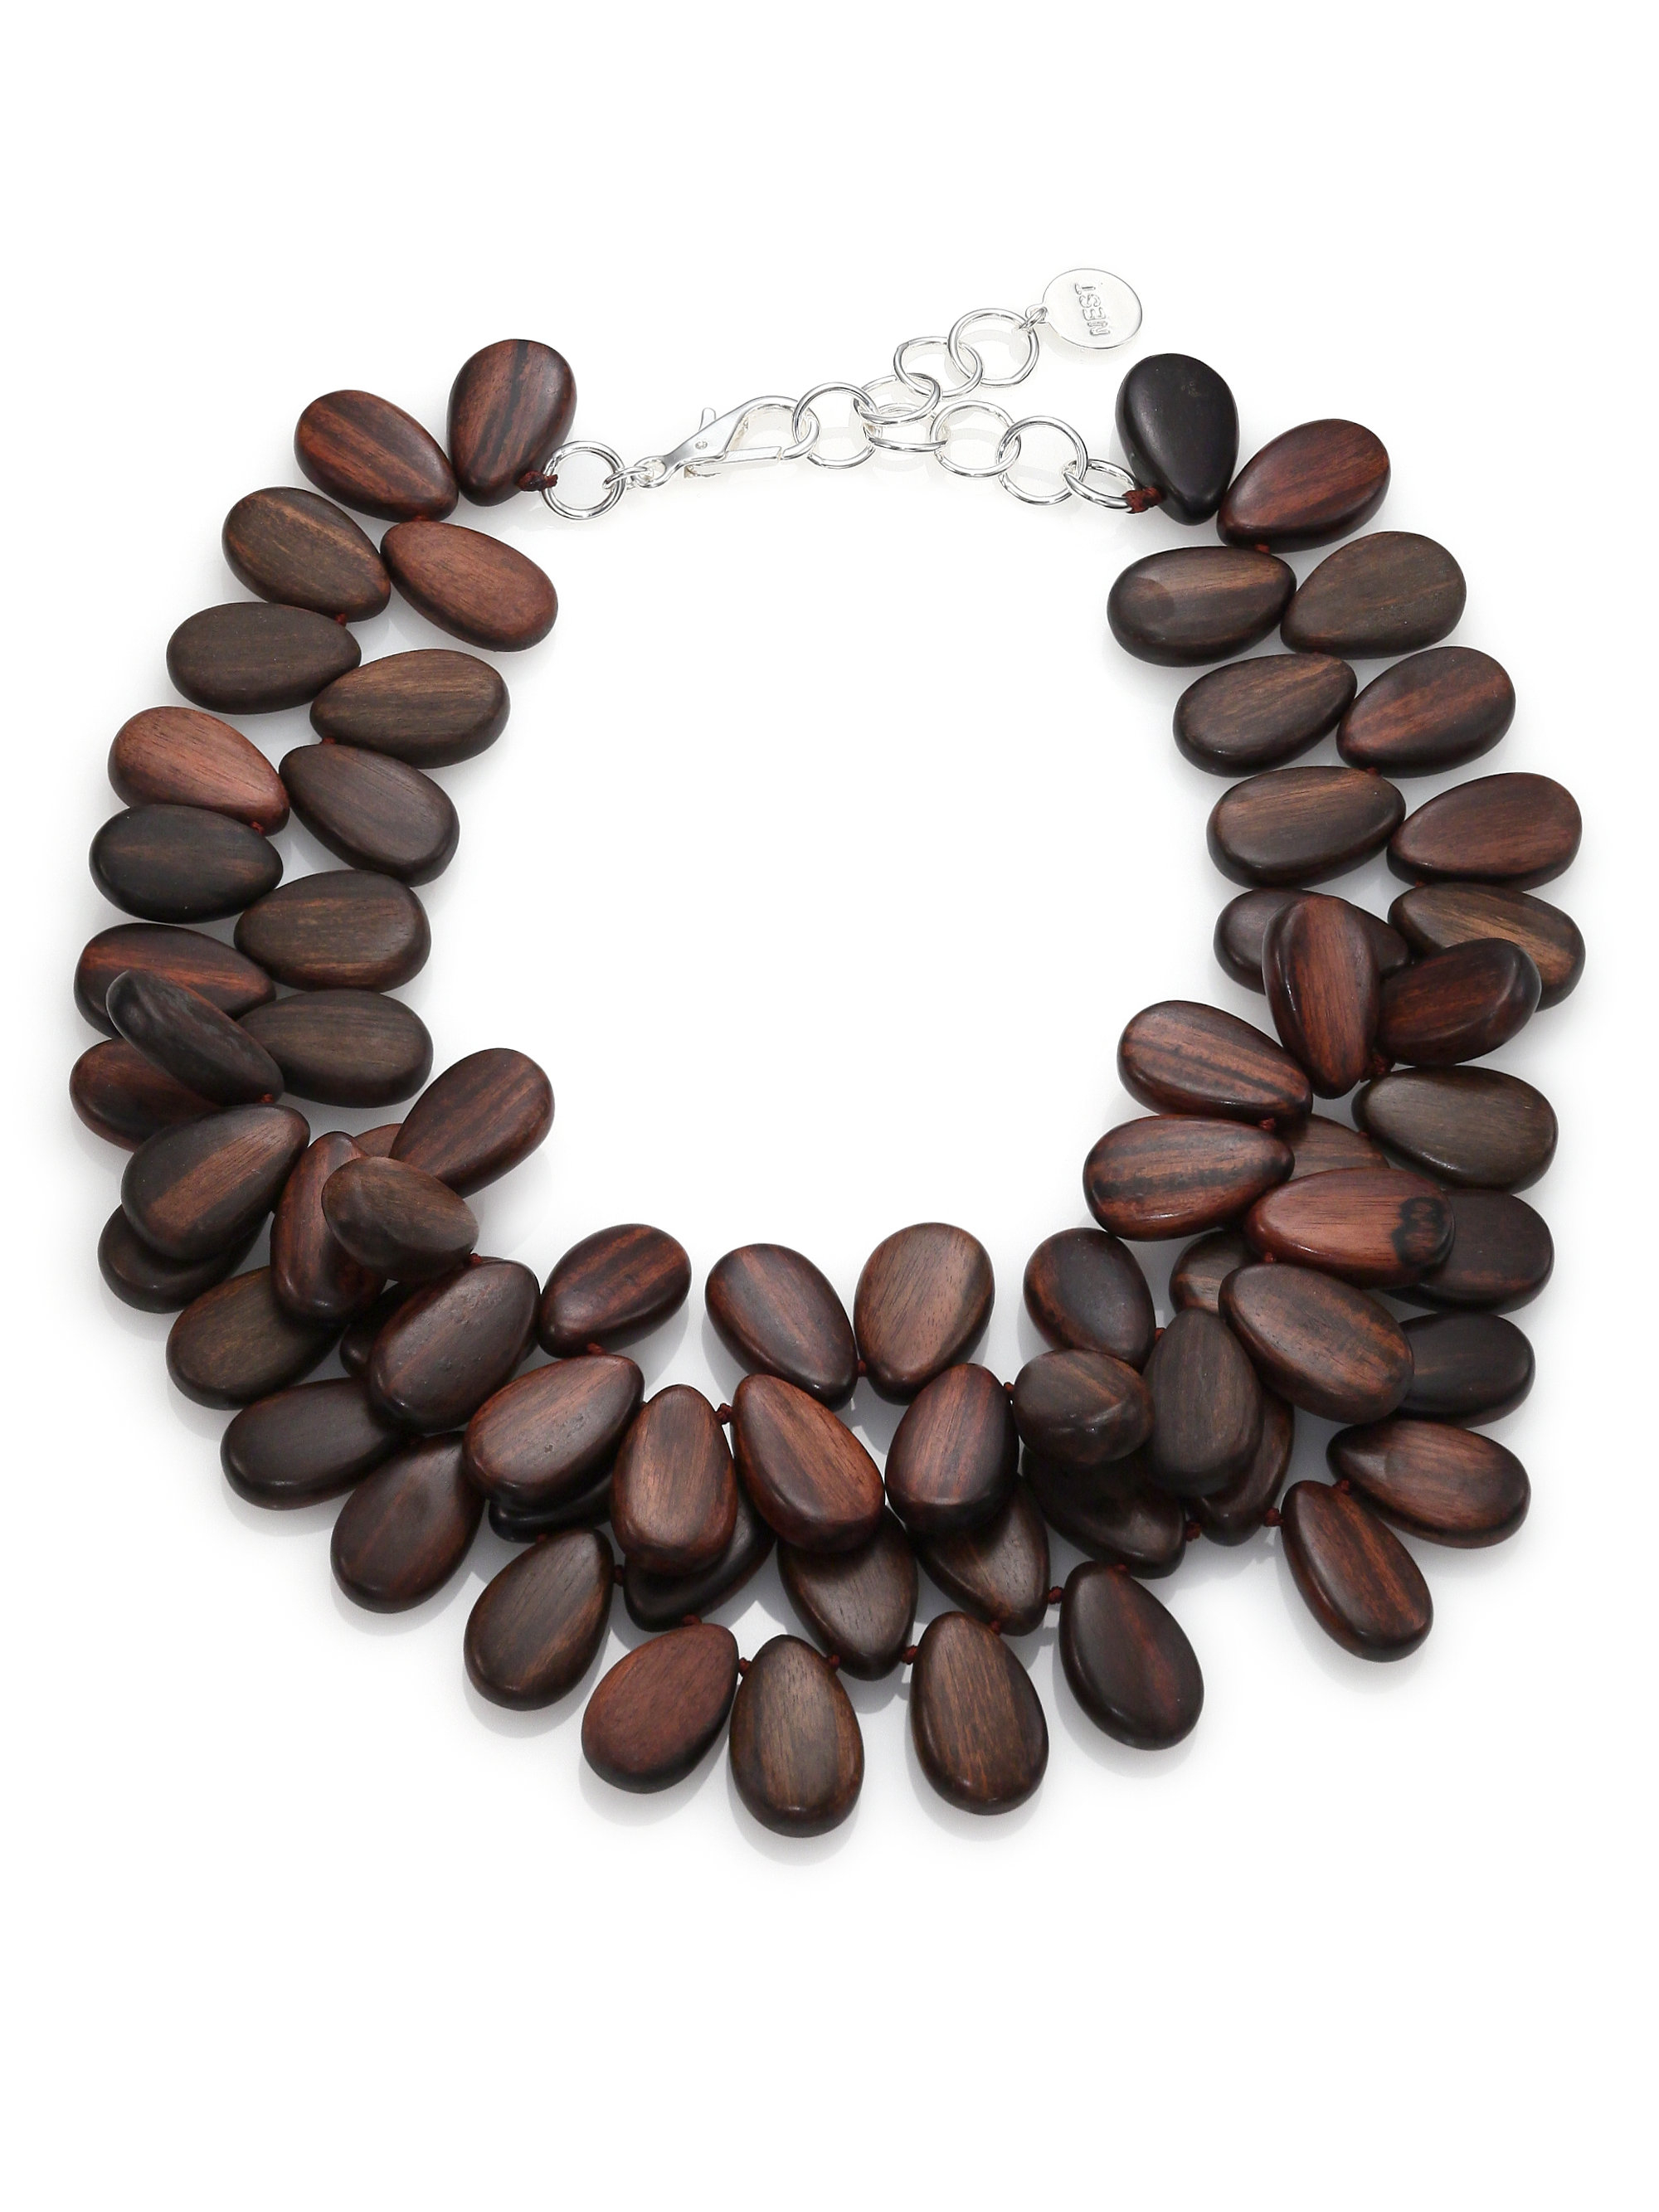 Lyst - Nest Ebony Wood Teardrop Cluster Necklace in Brown